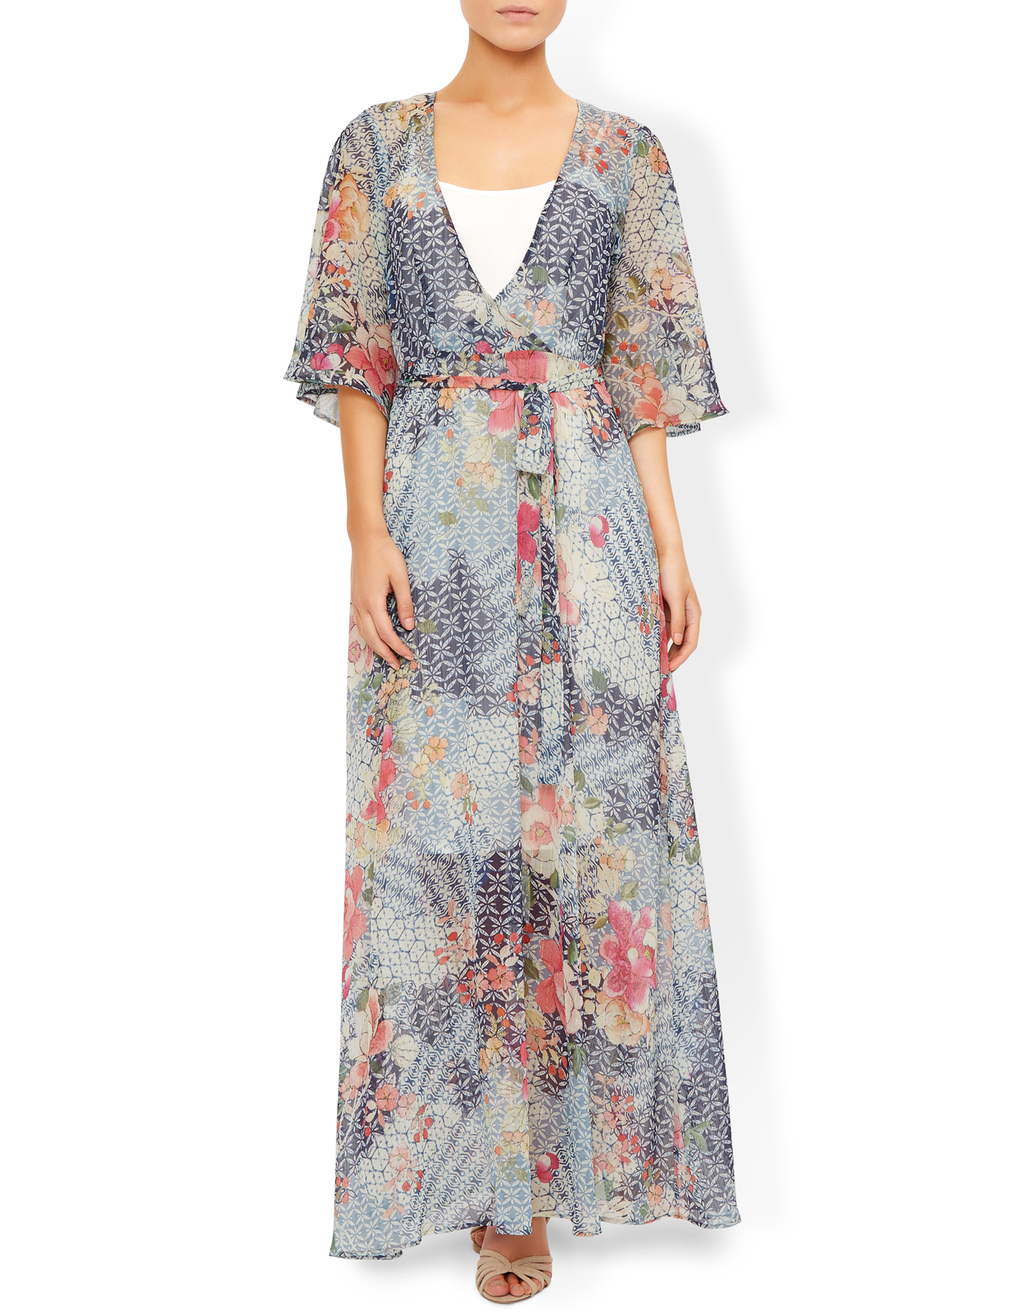 Janine Printed Wrap Maxi Dress - style: faux wrap/wrap; neckline: low v-neck; waist detail: belted waist/tie at waist/drawstring; secondary colour: pink; predominant colour: light grey; occasions: evening; length: floor length; fit: body skimming; fibres: polyester/polyamide - stretch; sleeve length: half sleeve; sleeve style: standard; texture group: sheer fabrics/chiffon/organza etc.; pattern type: fabric; pattern: florals; multicoloured: multicoloured; season: s/s 2016